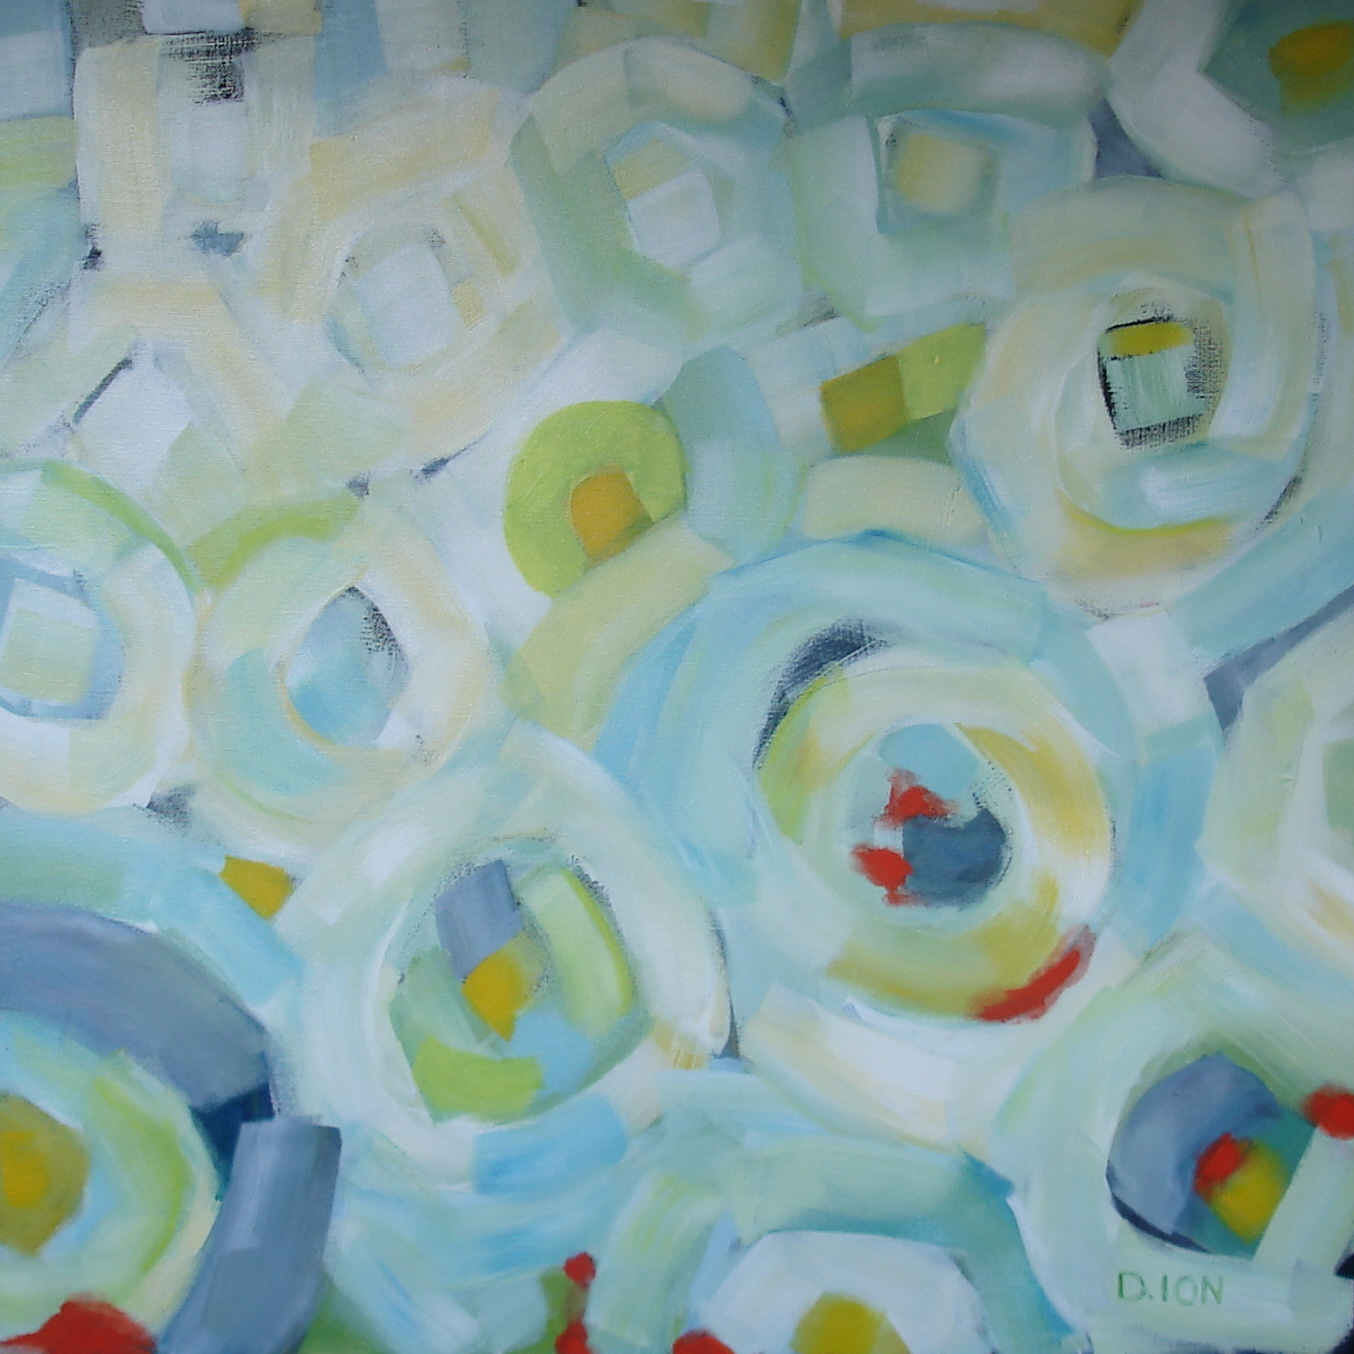 Circles 5 24x24 inches